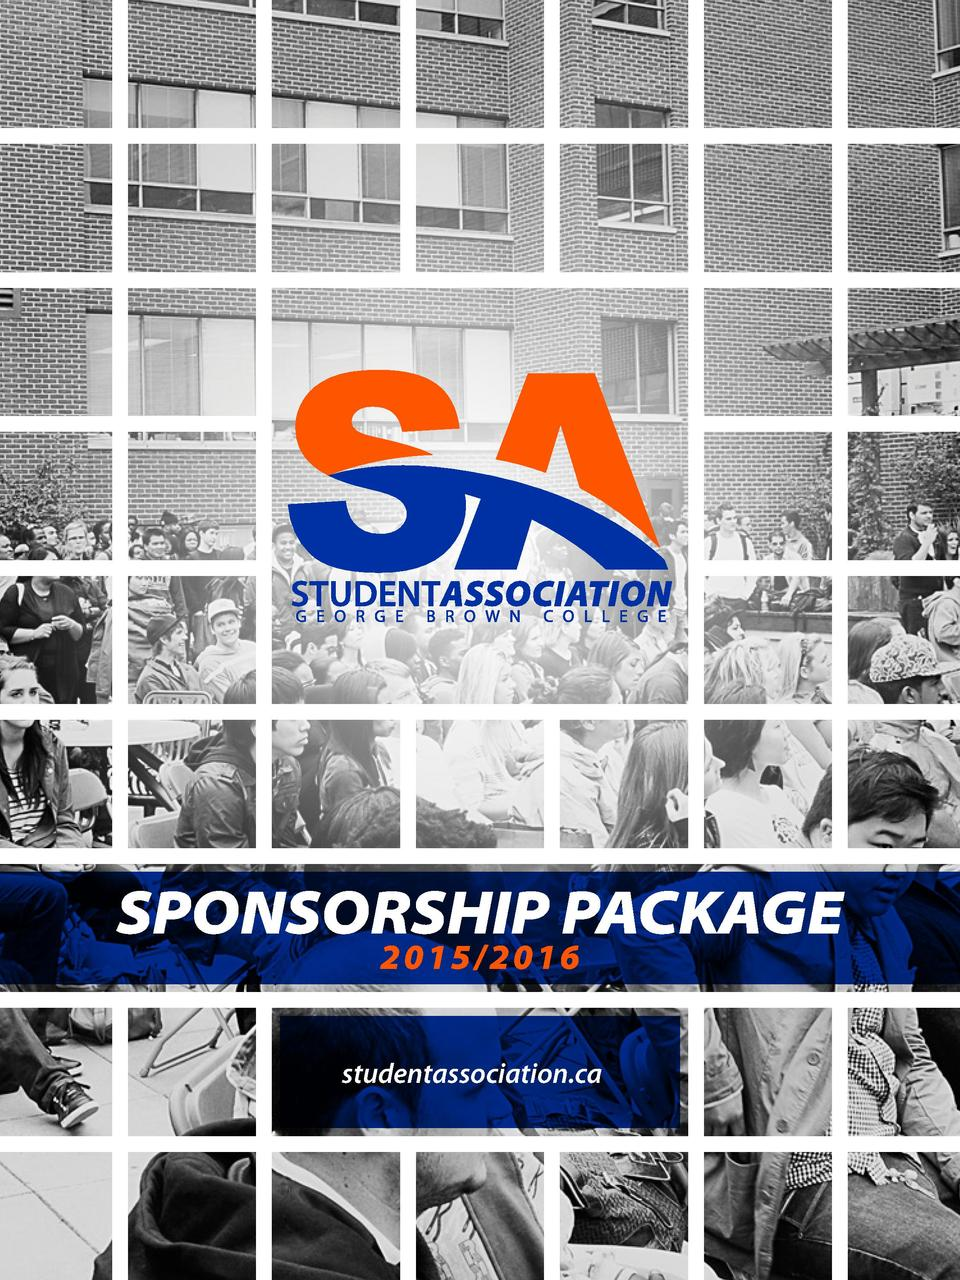 SPONSORSHIP PACKAGE 2015 2016  studentassociation.ca  1